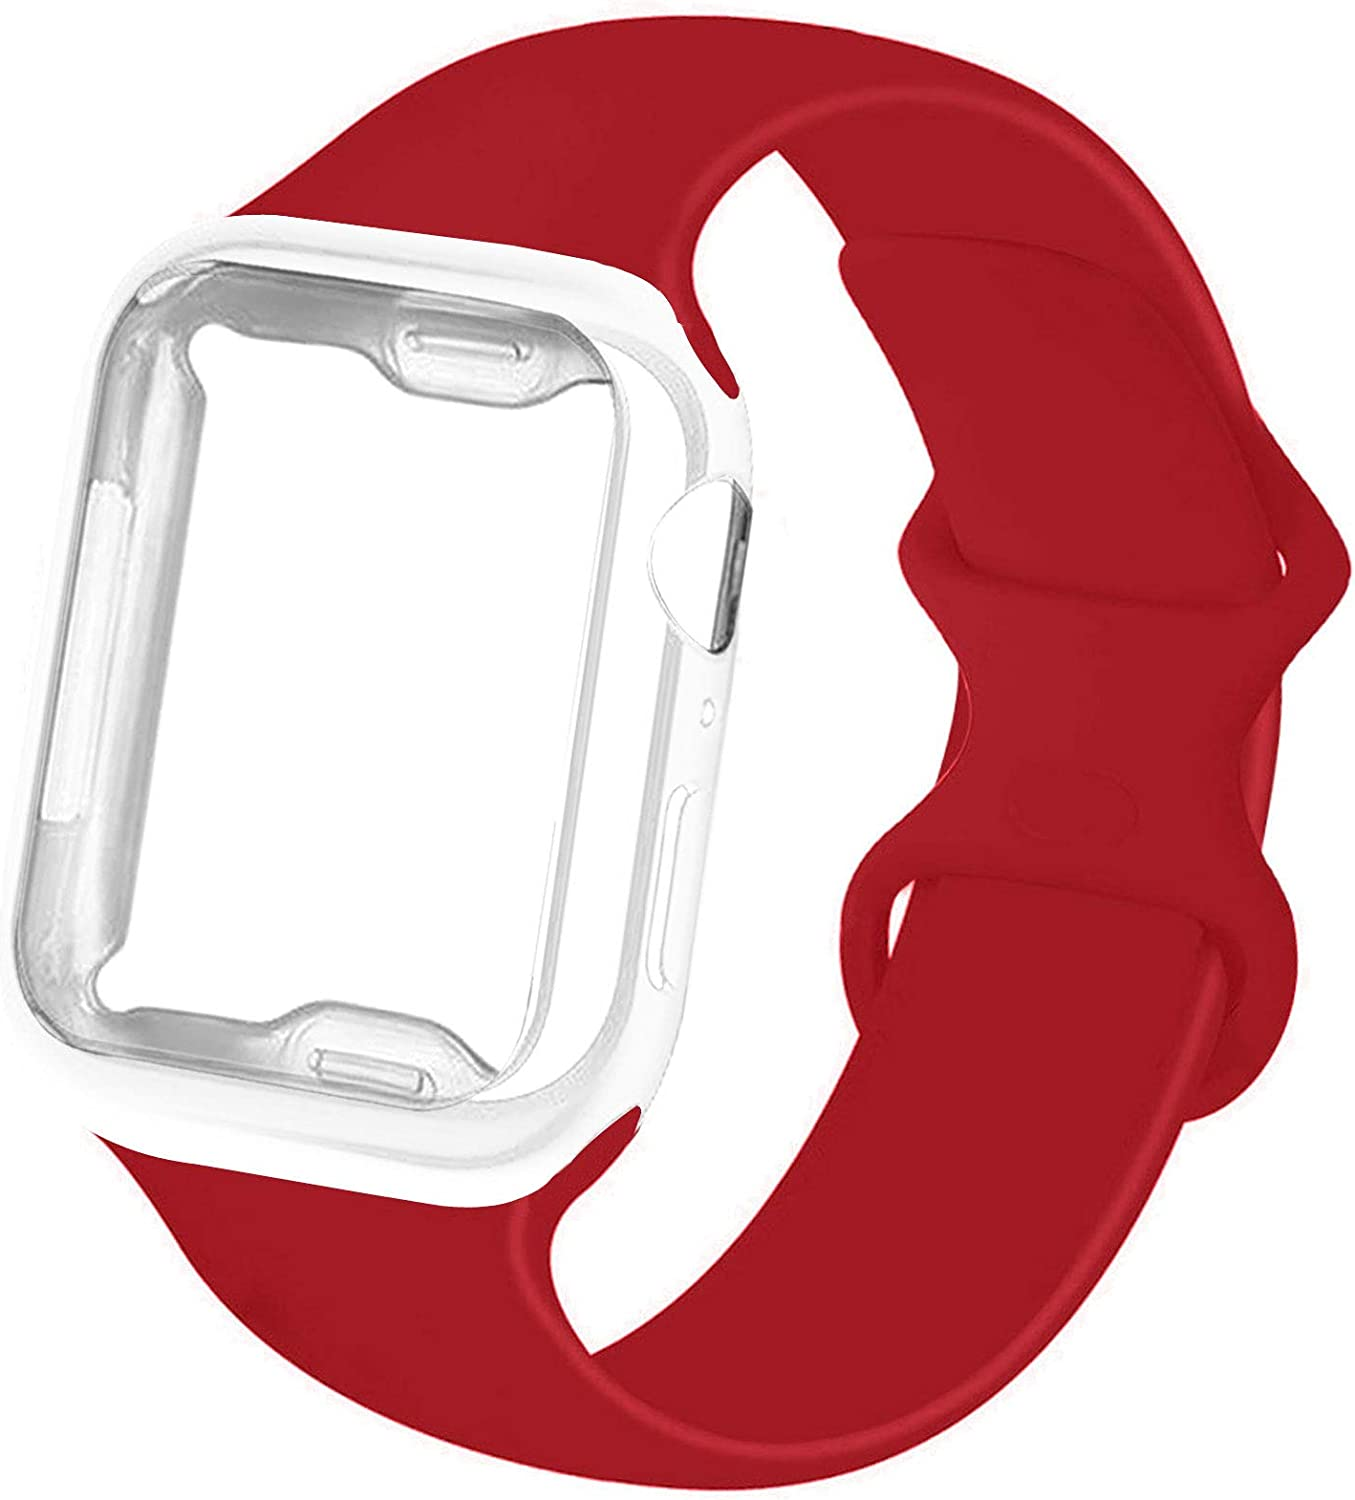 RUOQINI Smartwatch Band with Case Compatiable for Apple Watch Band 38mm 40mm 42mm 44mm, Silicone Sport Band and TPU Case for iWatch Series 6/5/4/3/2/1/SE